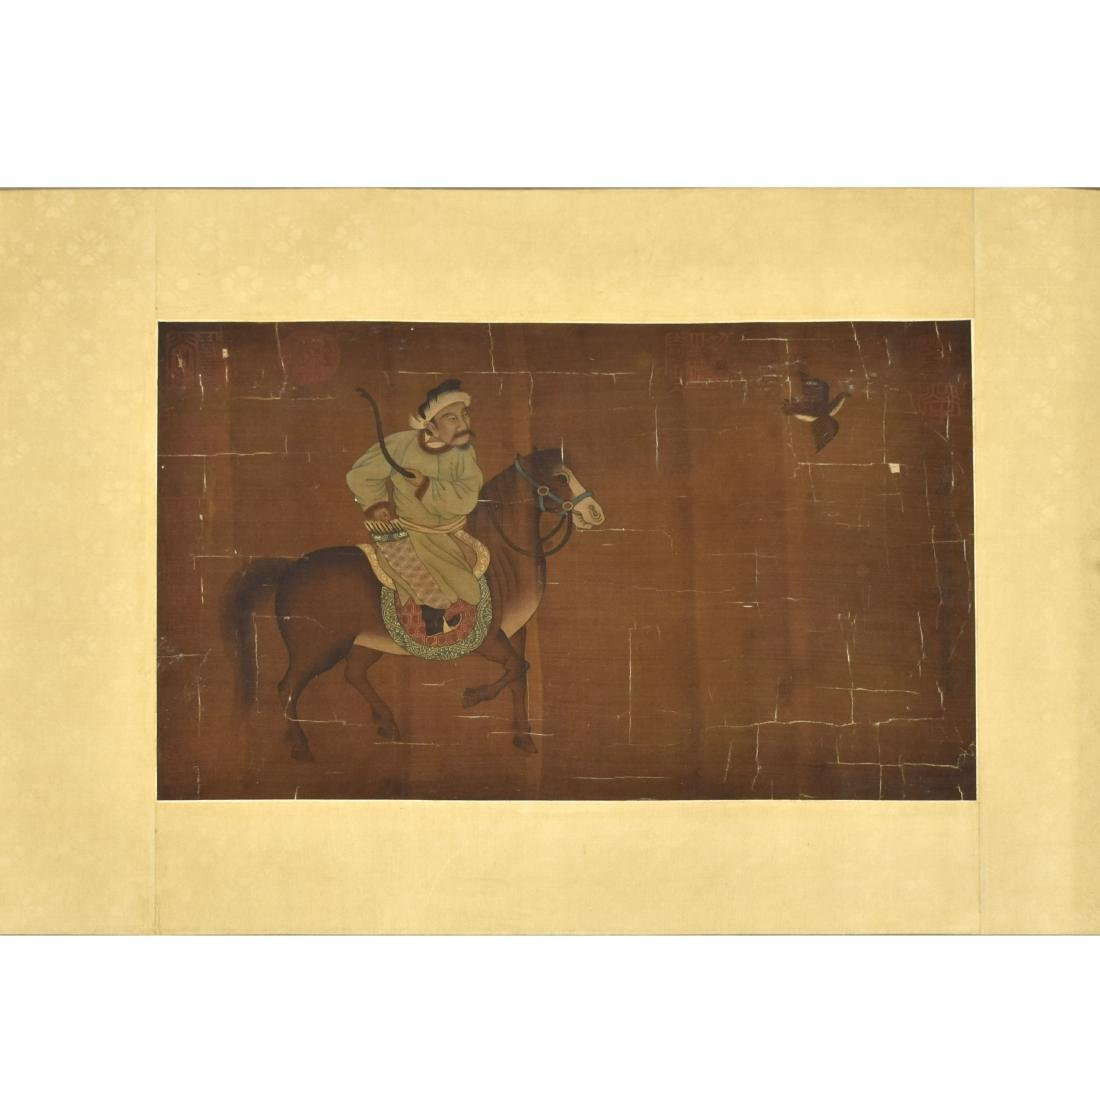 QING DYNASTY PAINTING OF HORSE RIDING WARRIOR - 2